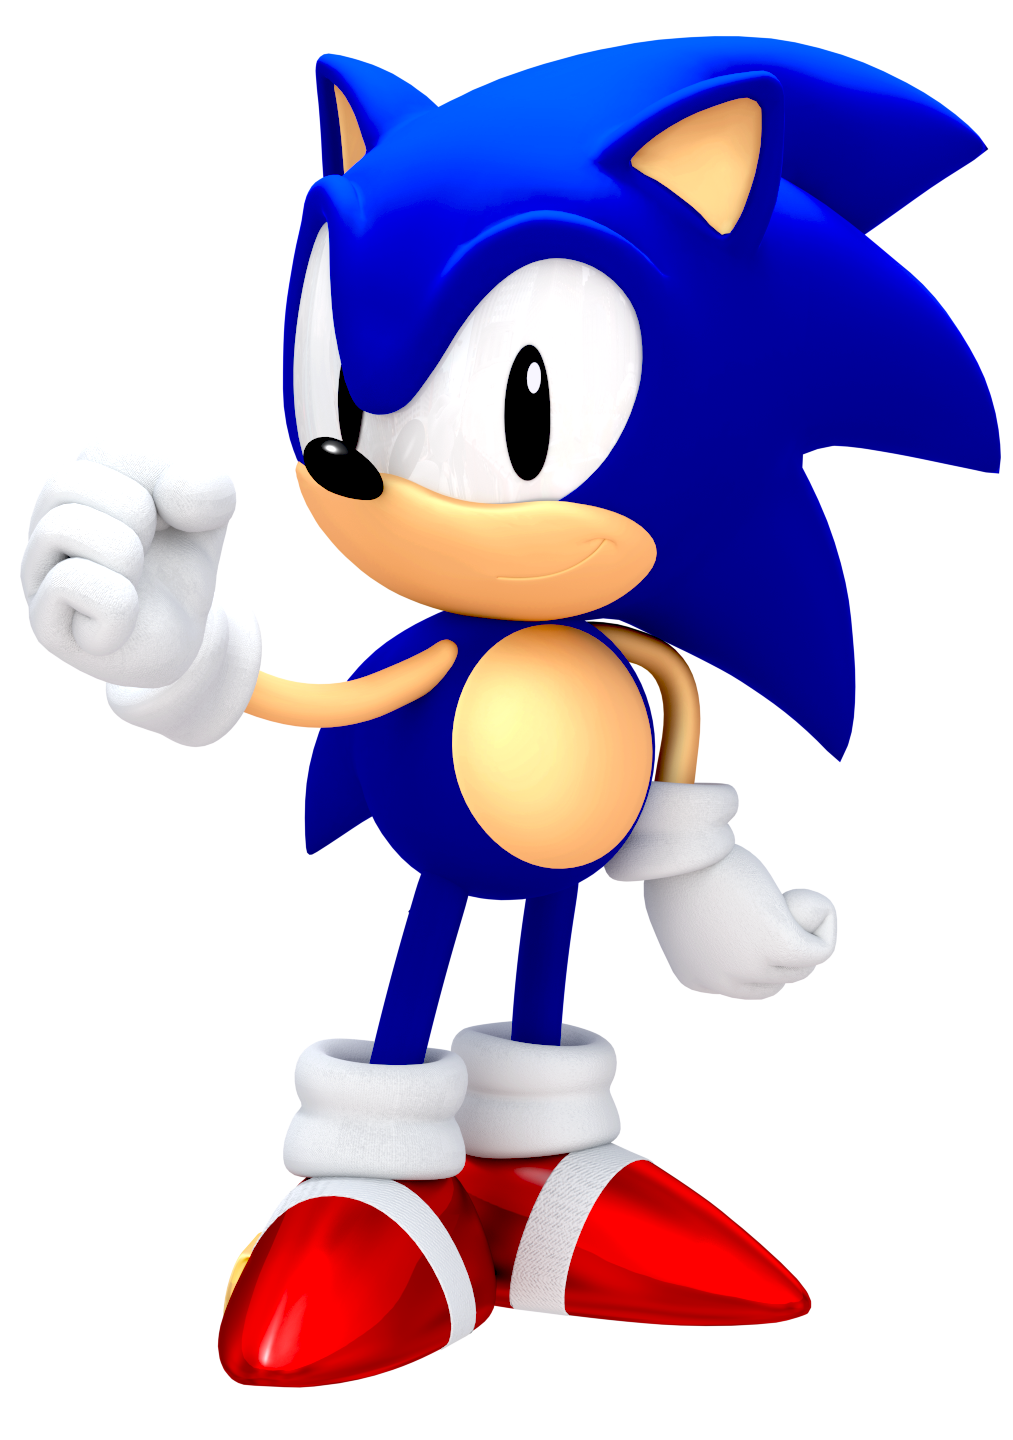 Sonic the hedgehog fanon. Slavery clipart cuffed hand